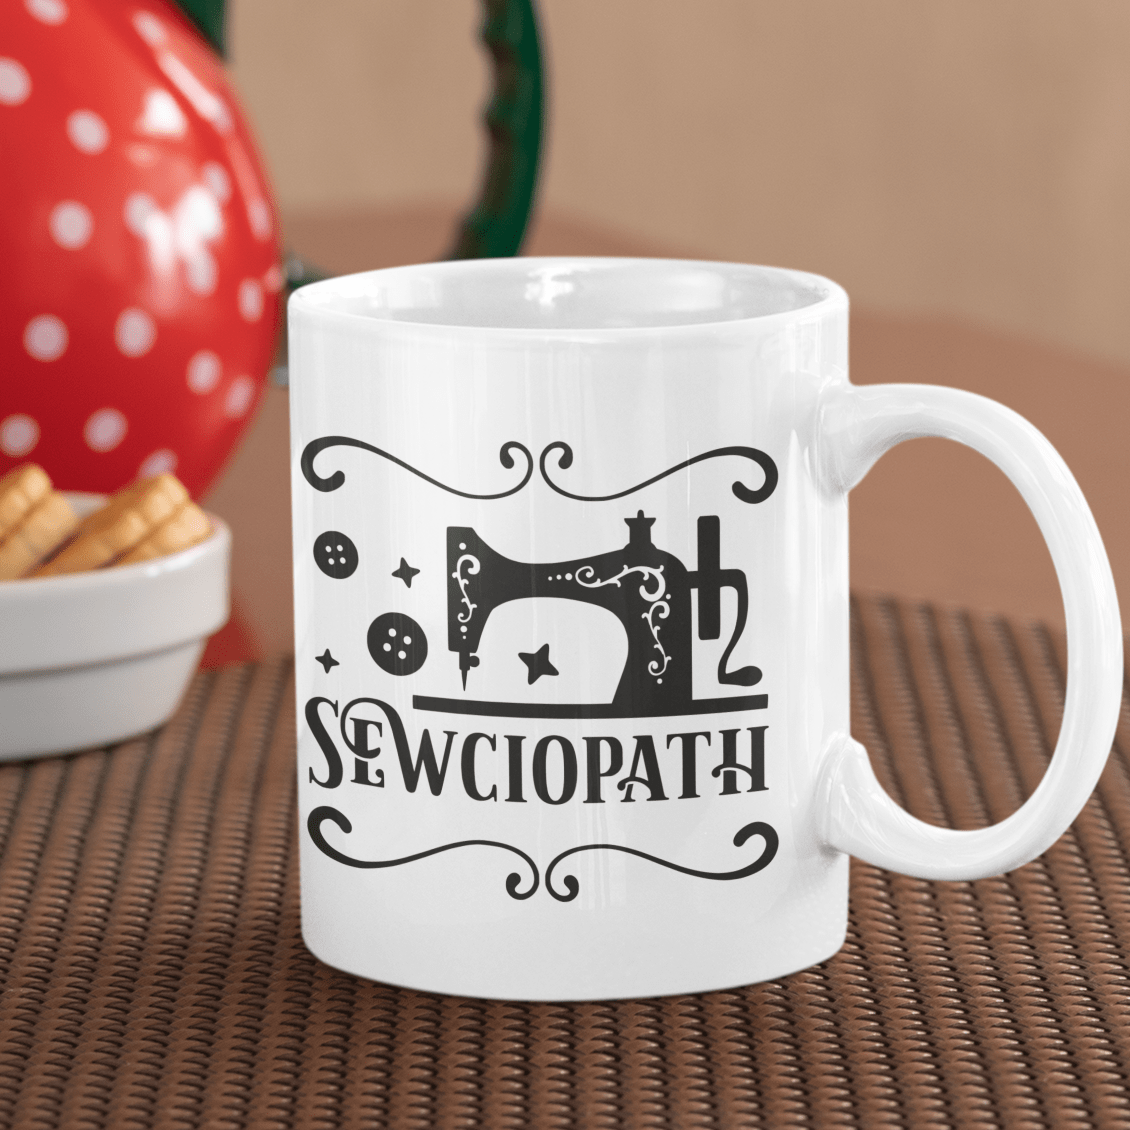 Sewciopath Ceramic Mug